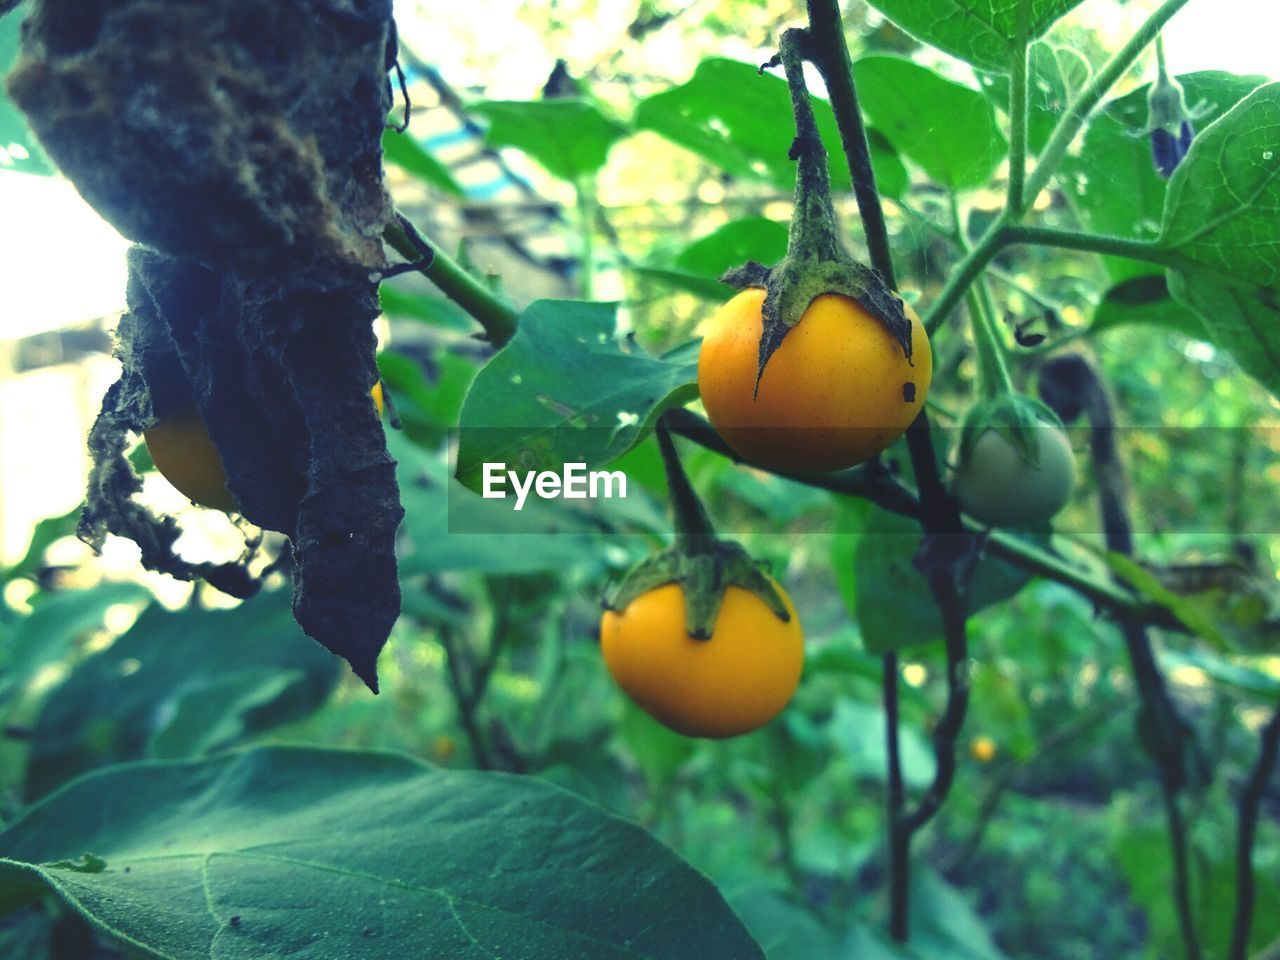 fruit, growth, food and drink, tree, leaf, citrus fruit, food, freshness, no people, hanging, branch, nature, focus on foreground, day, close-up, green color, healthy eating, outdoors, beauty in nature